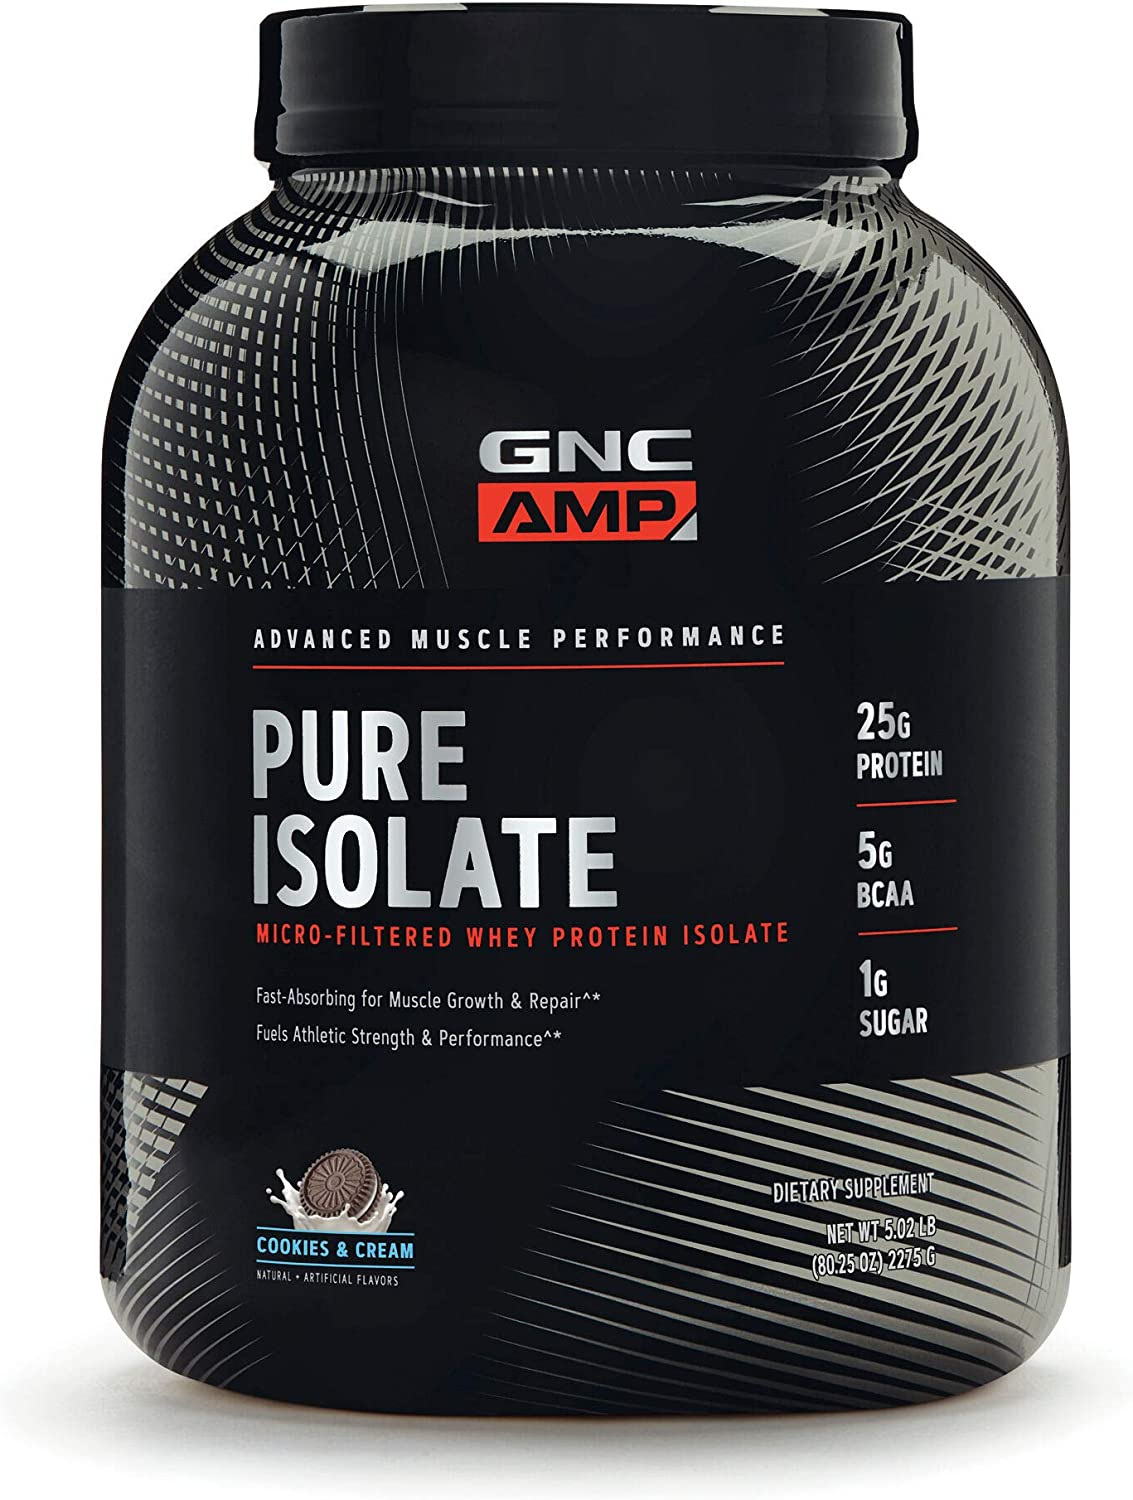 GNC AMP Pure Isolate – Cookies and Cream